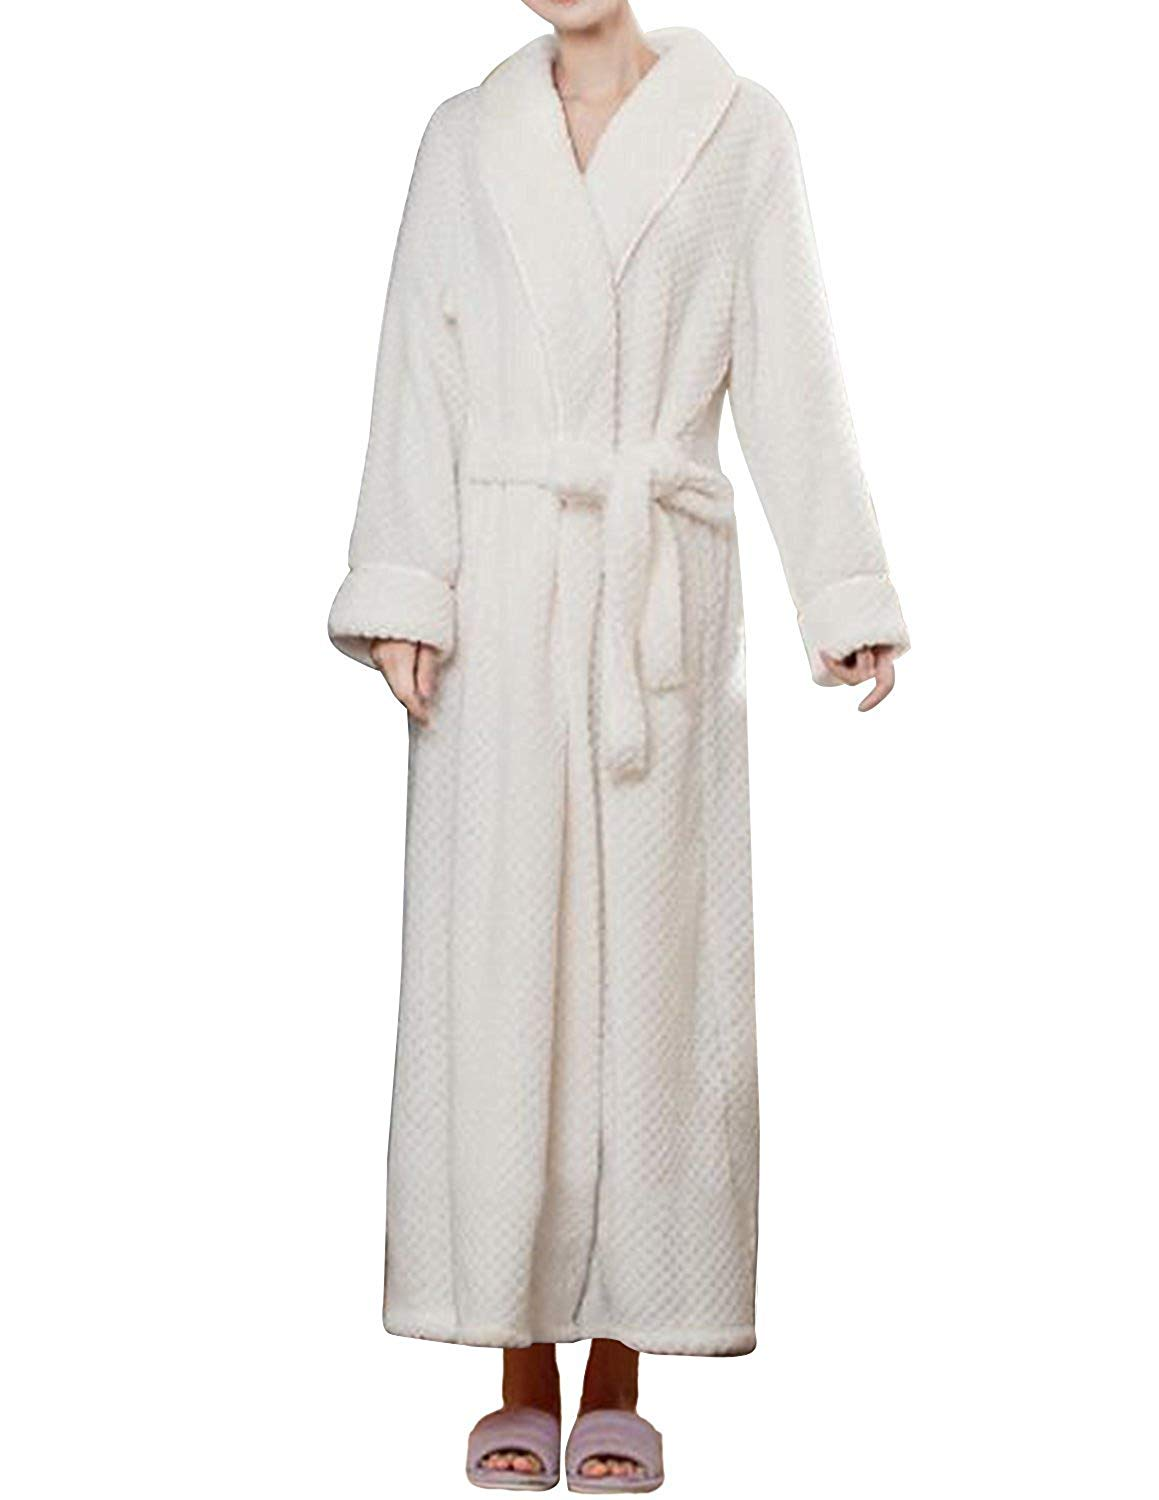 ea5f037bfc Get Quotations · 19V78 Women s Hooded Long Robes Nightwear Bathrobes Shawl  Collar Spa Kimono Full Length Soft Fleece